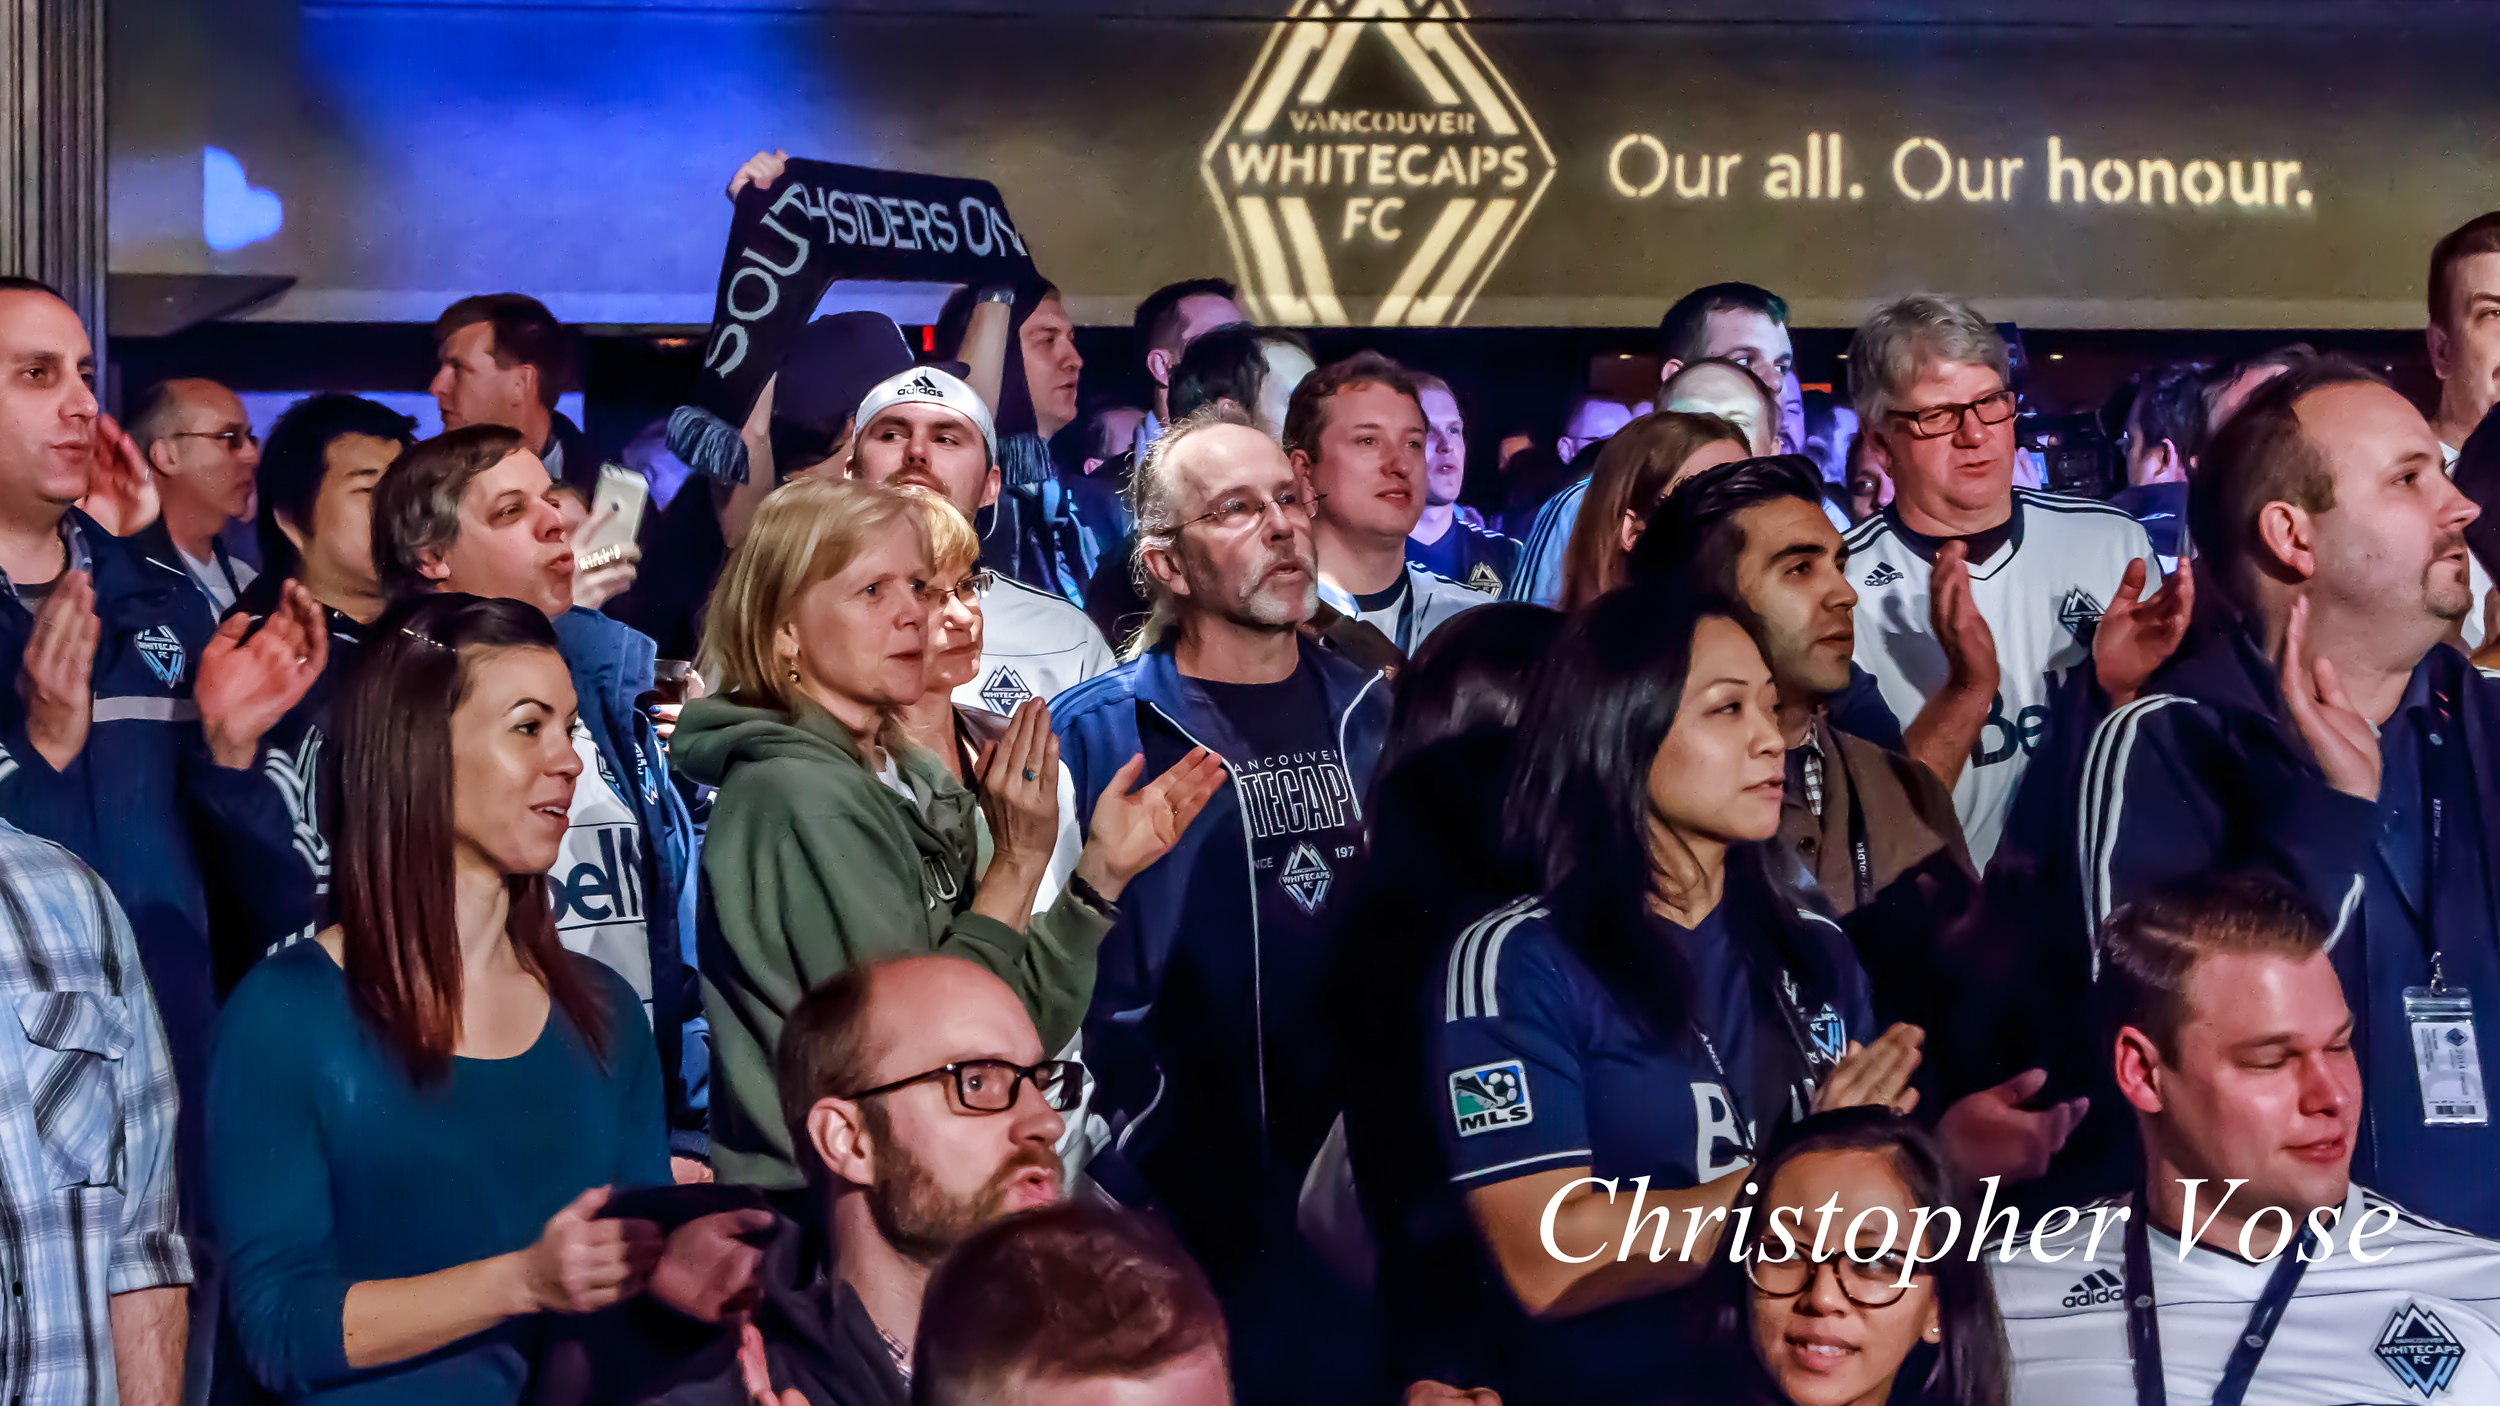 Vancouver Whitecaps FC Supporters-3.jpg